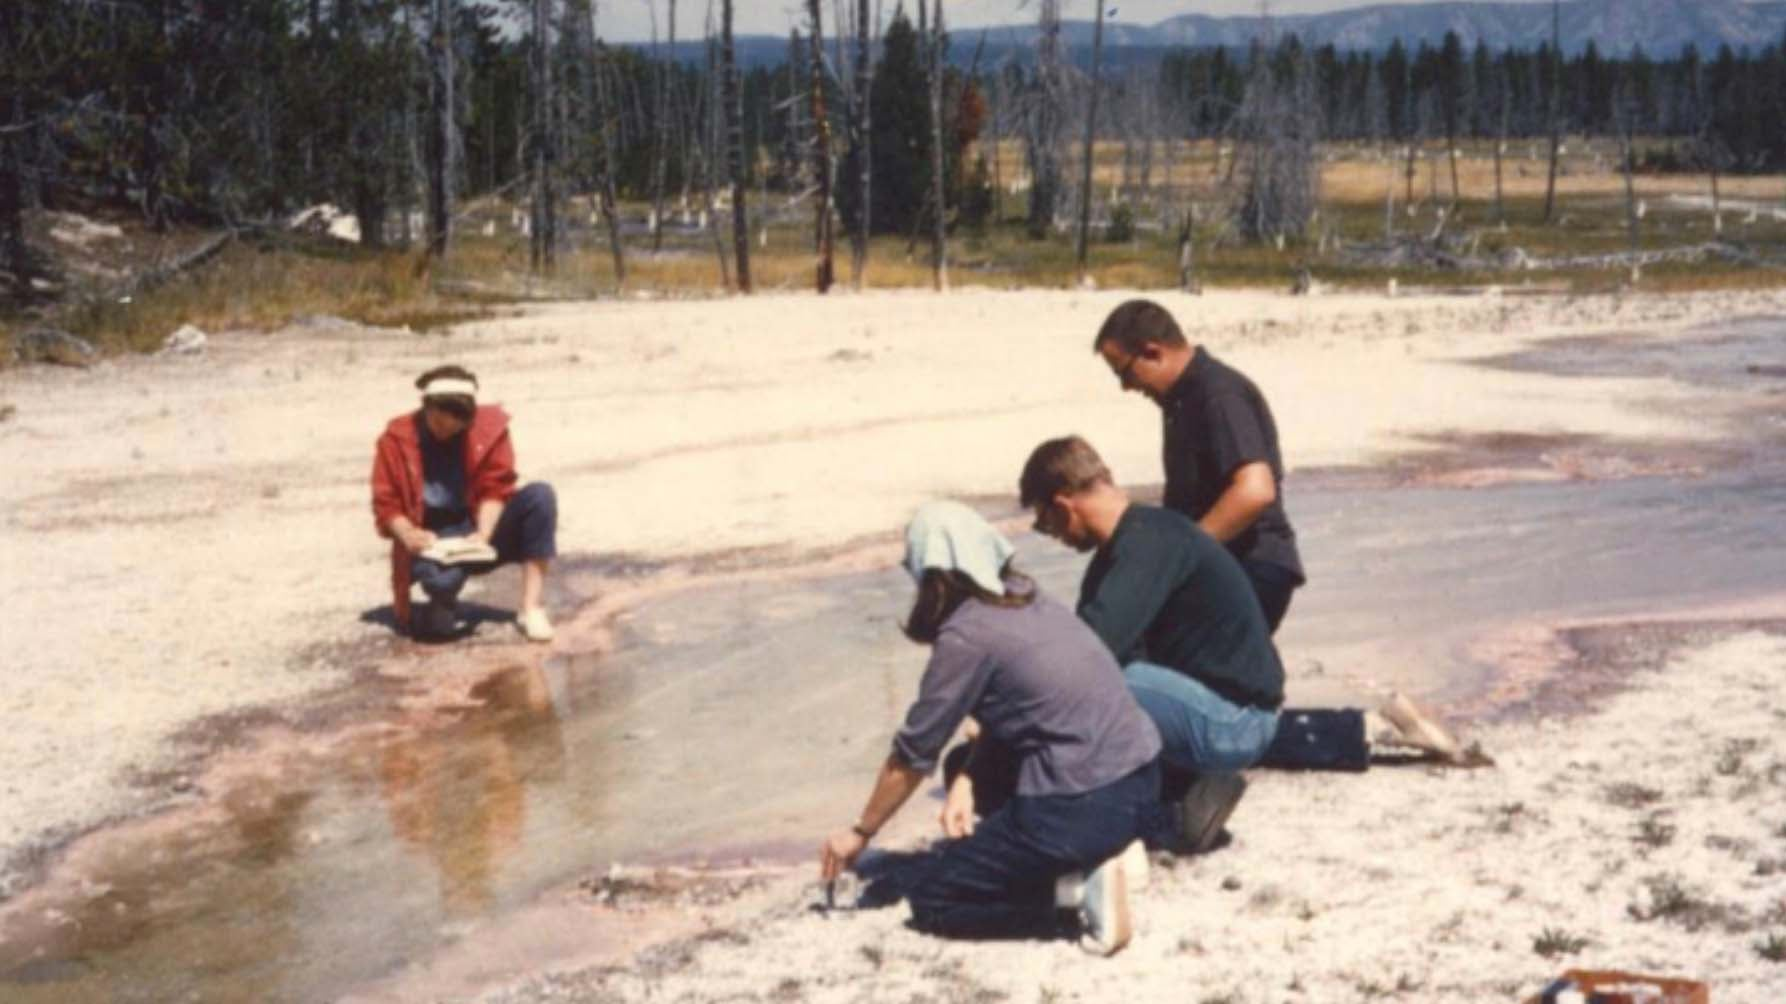 Scientist Recounts 1960s Yellowstone Research That Made COVID-19 PCR Tests Possible | The Weather Channel - Articles from The Weather Channel | weather.com